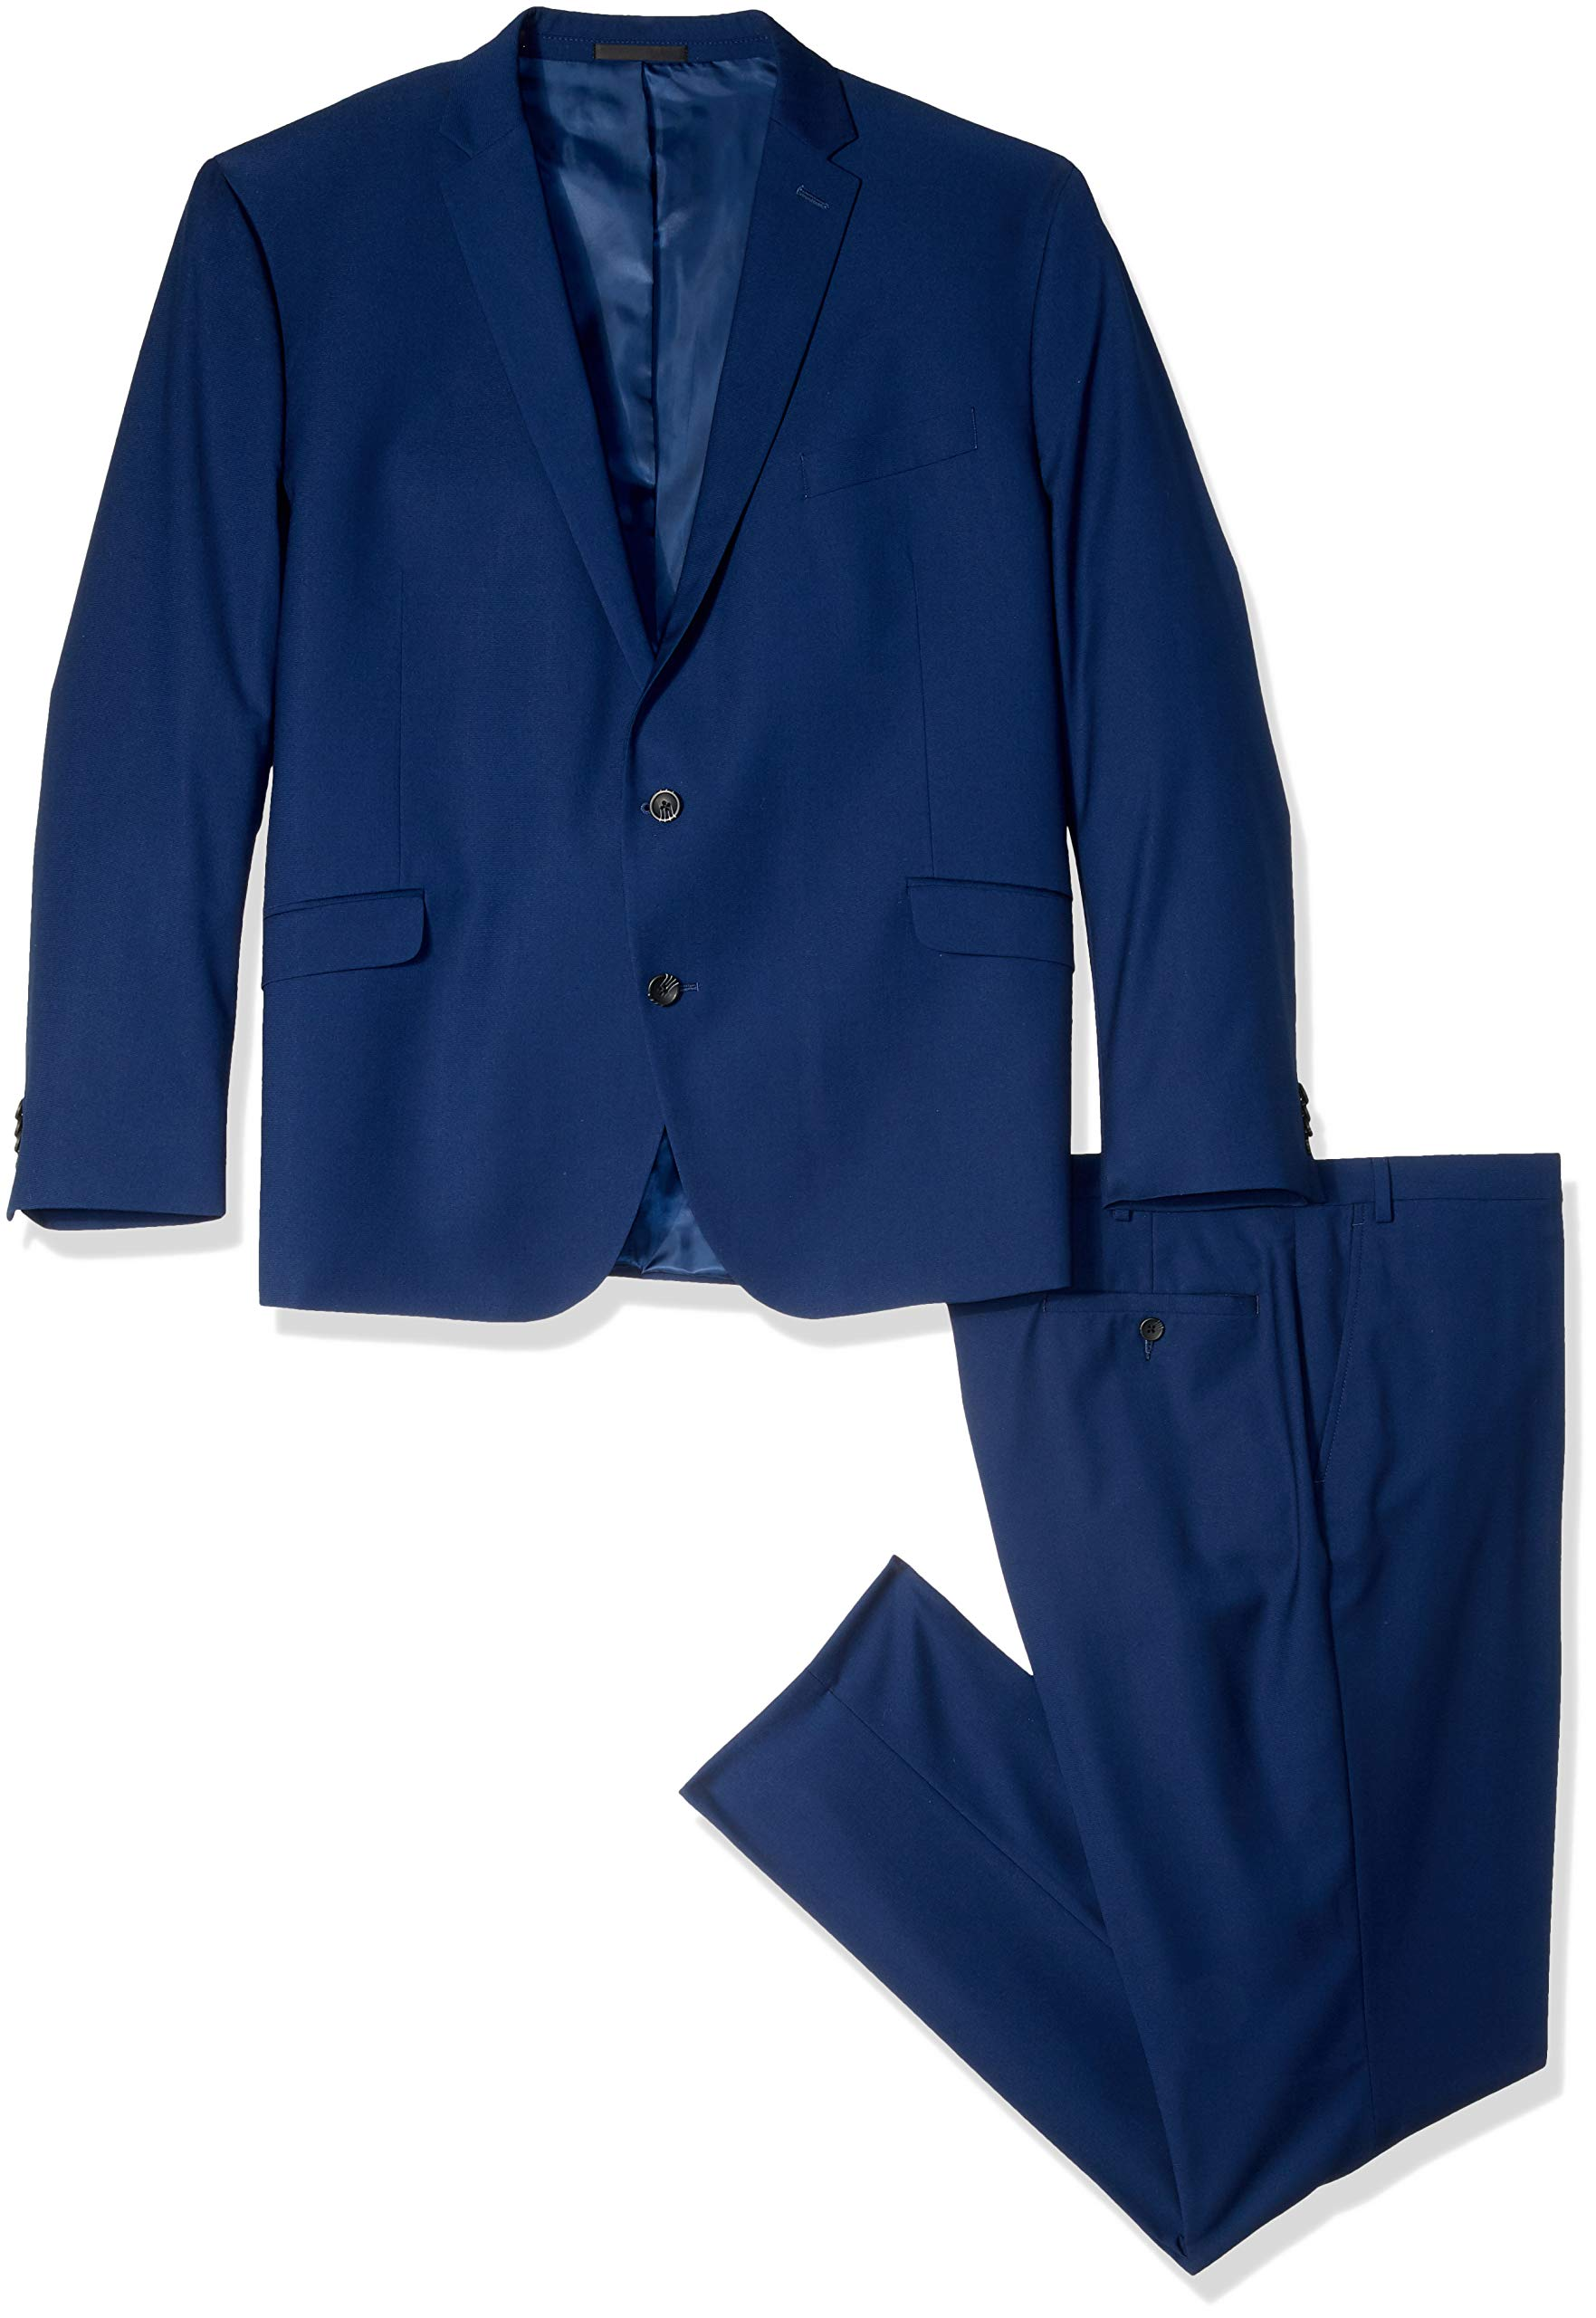 Kenneth Cole REACTION Men's Big and Tall Big & Tall Performance Stretch Suit, Modern Blue, 60 Regular